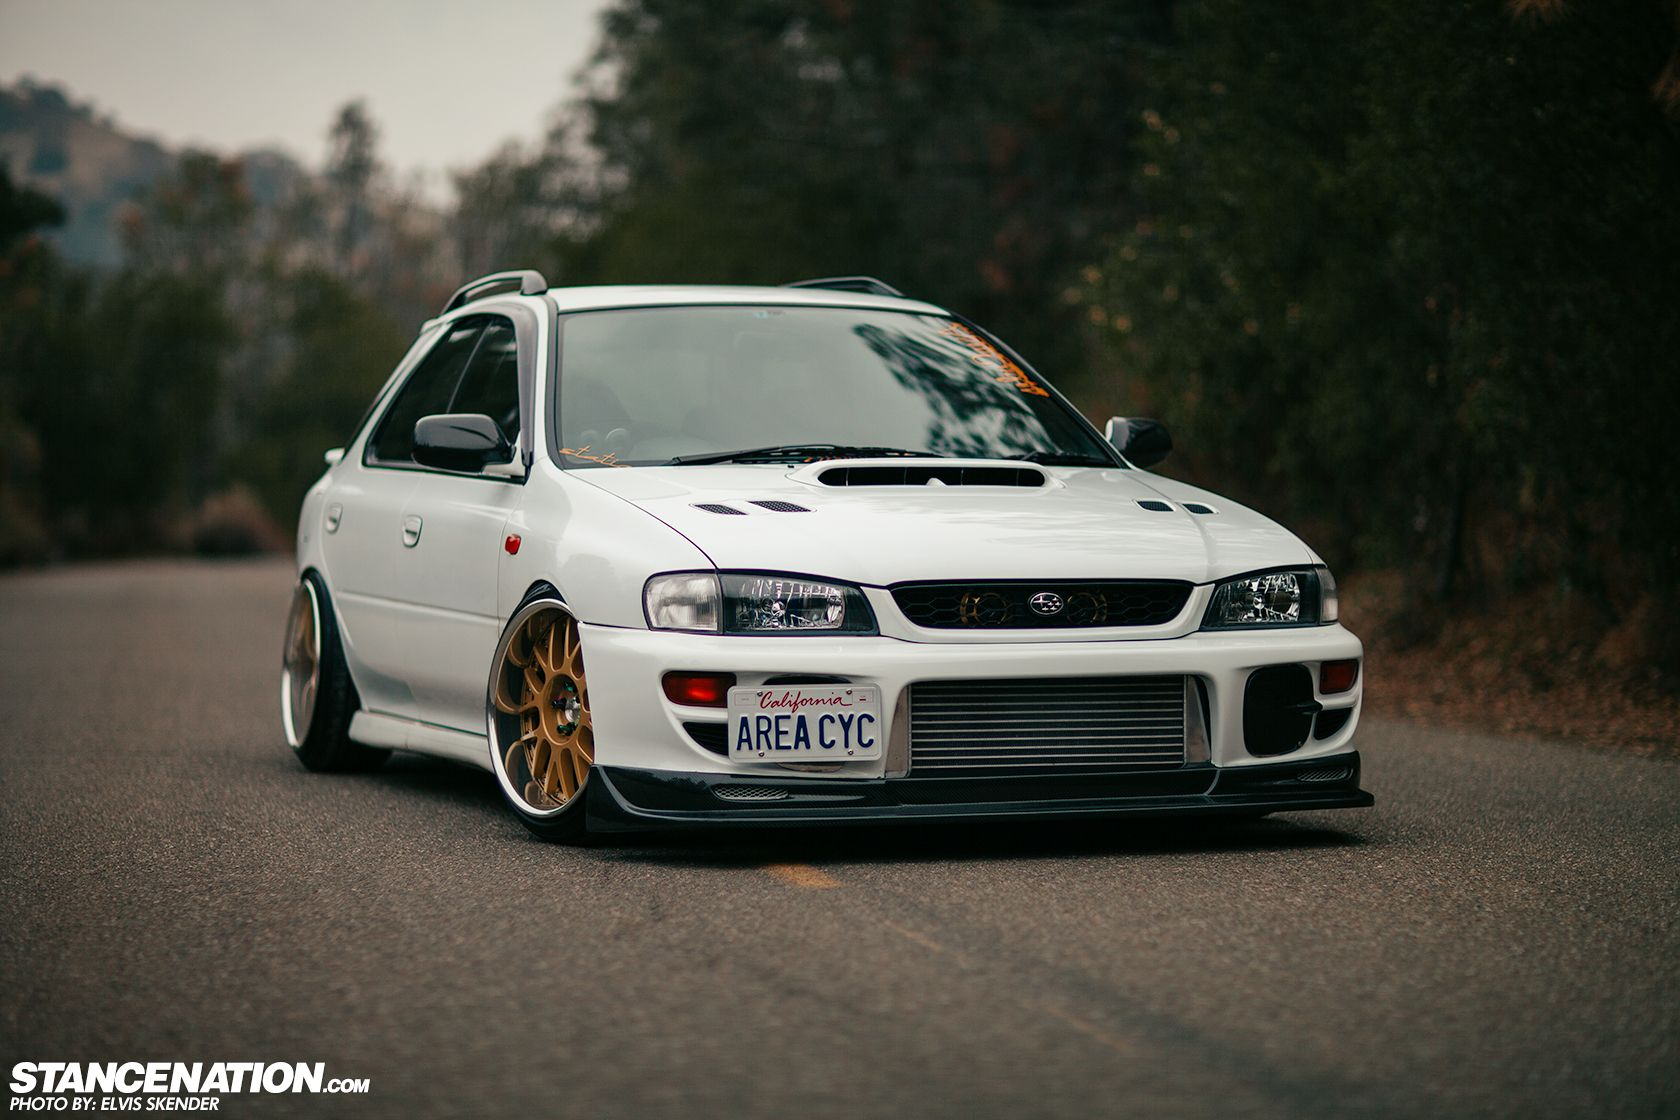 slammed subaru wagon sti impreza wrx rhd 26 cars to buy jdm idea pinterest subaru wagon. Black Bedroom Furniture Sets. Home Design Ideas